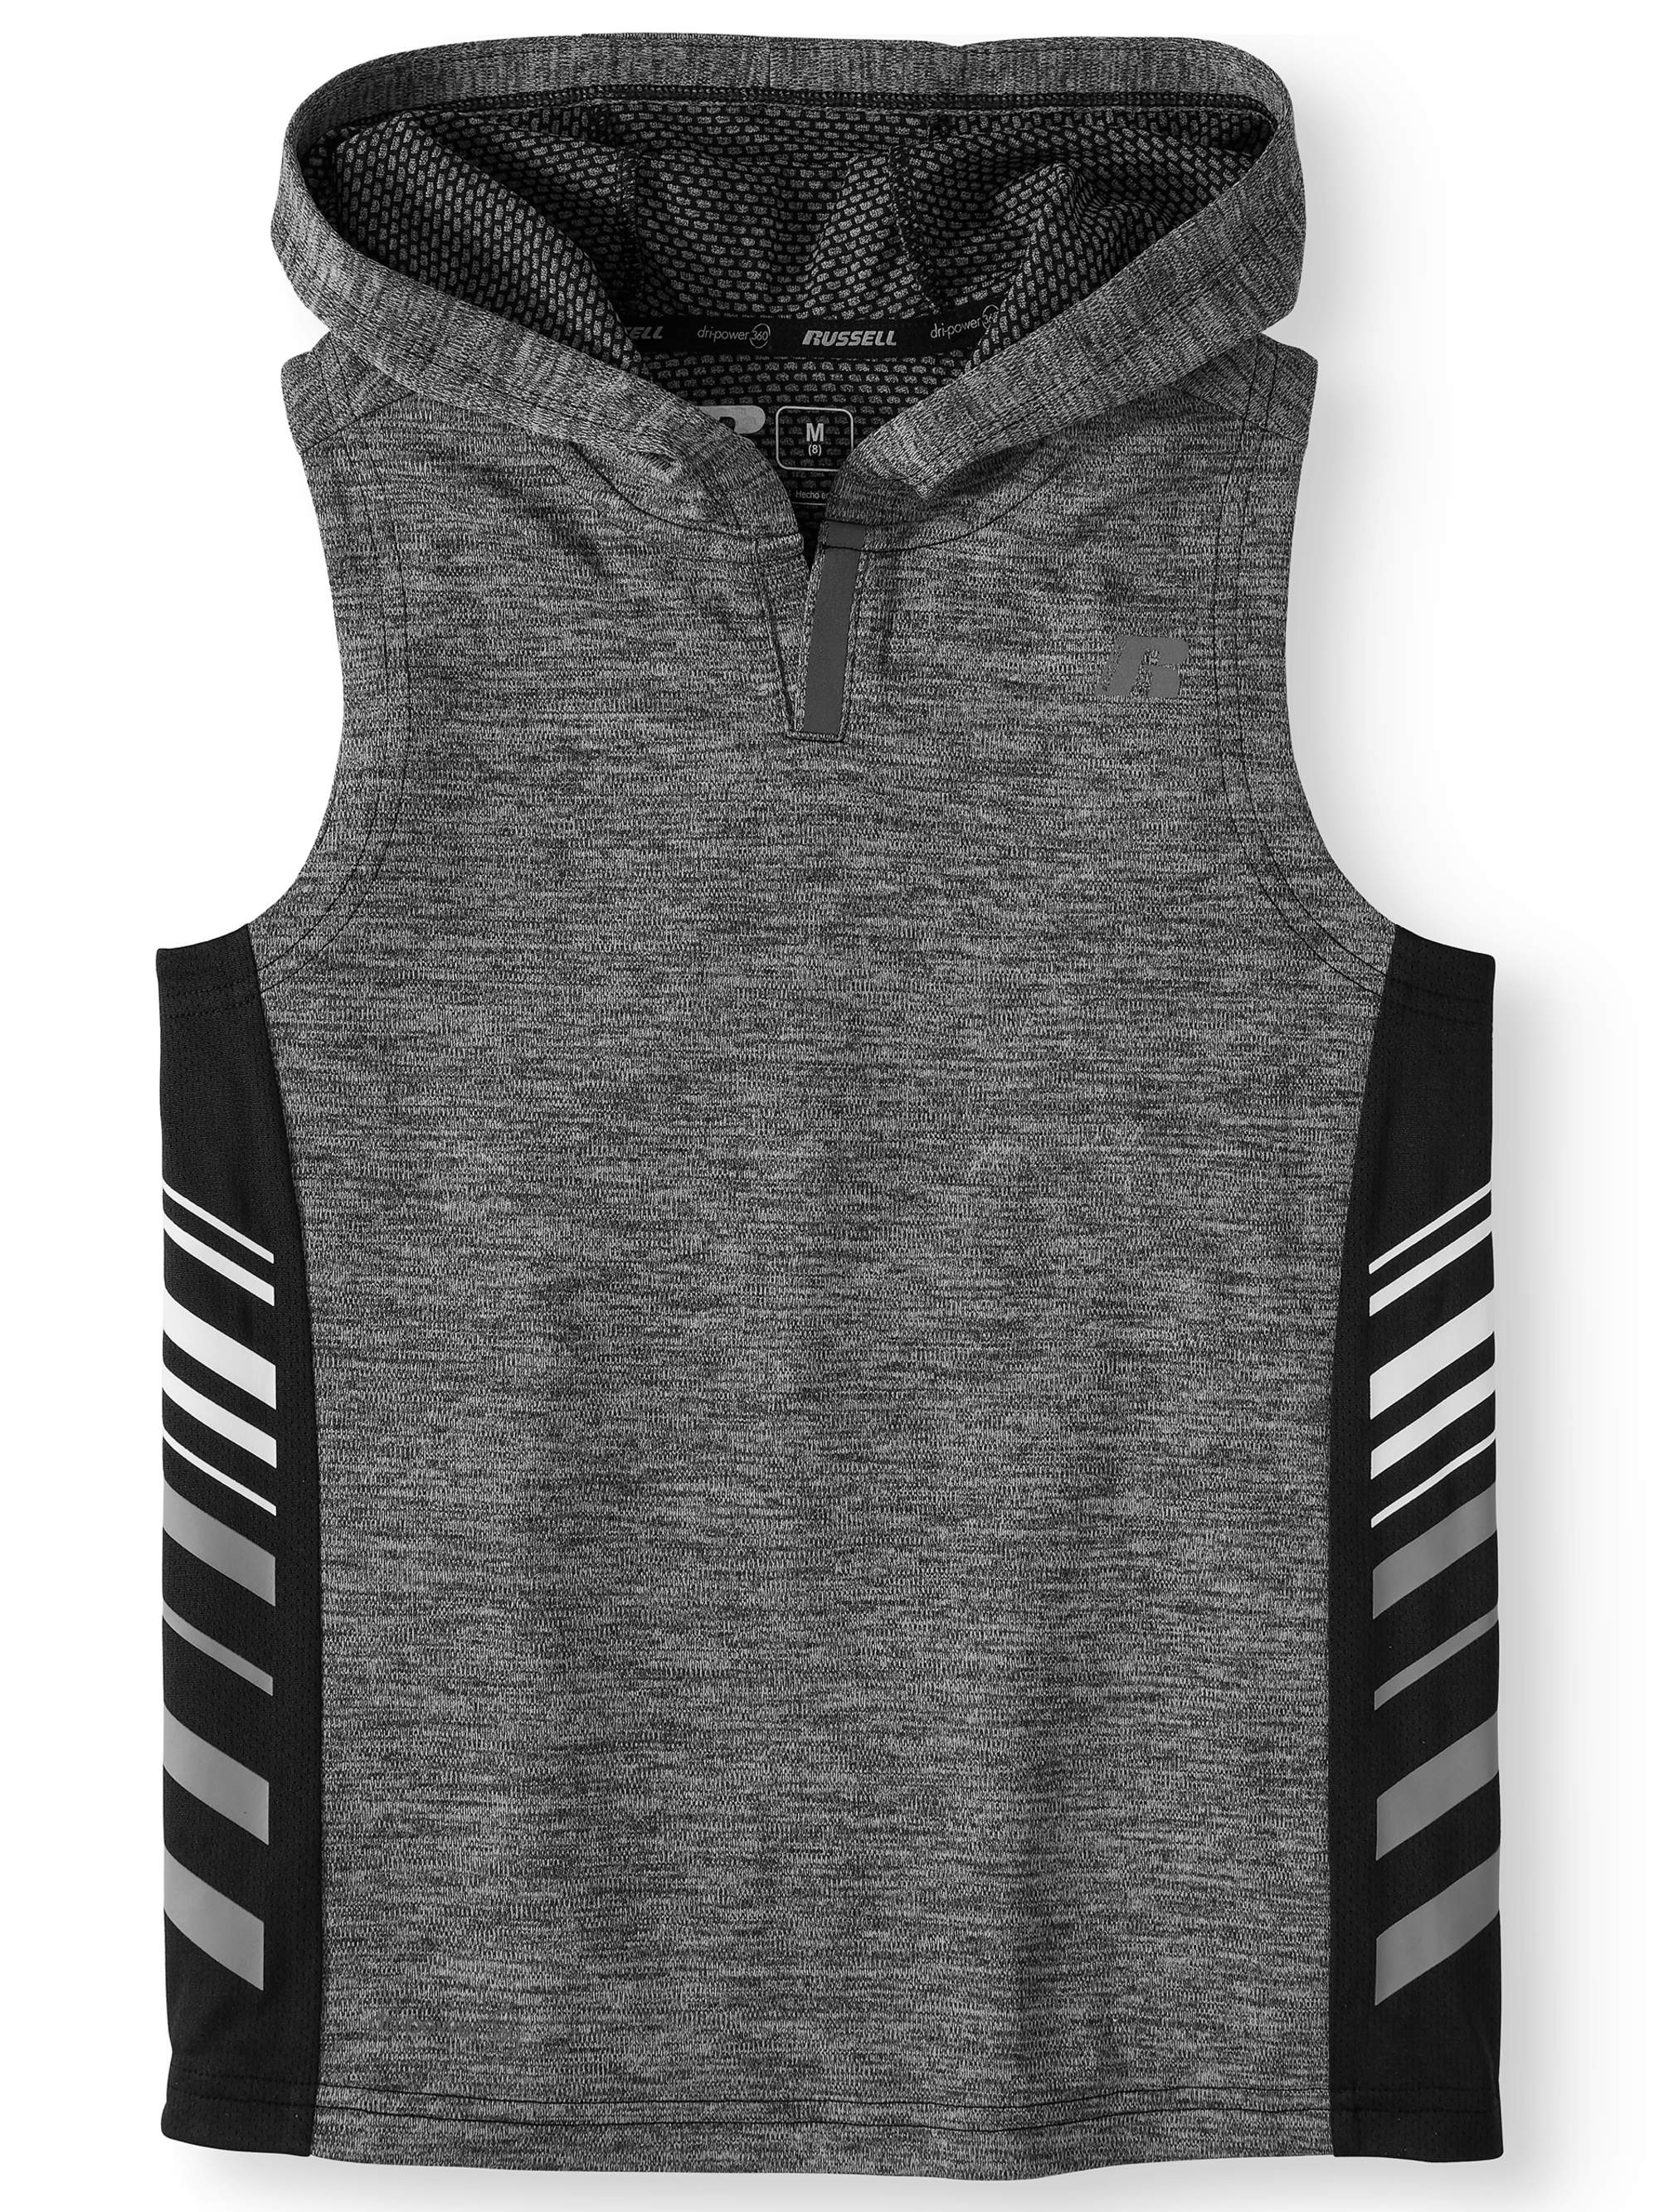 Boys' Sleeveless Performance Hooded Top